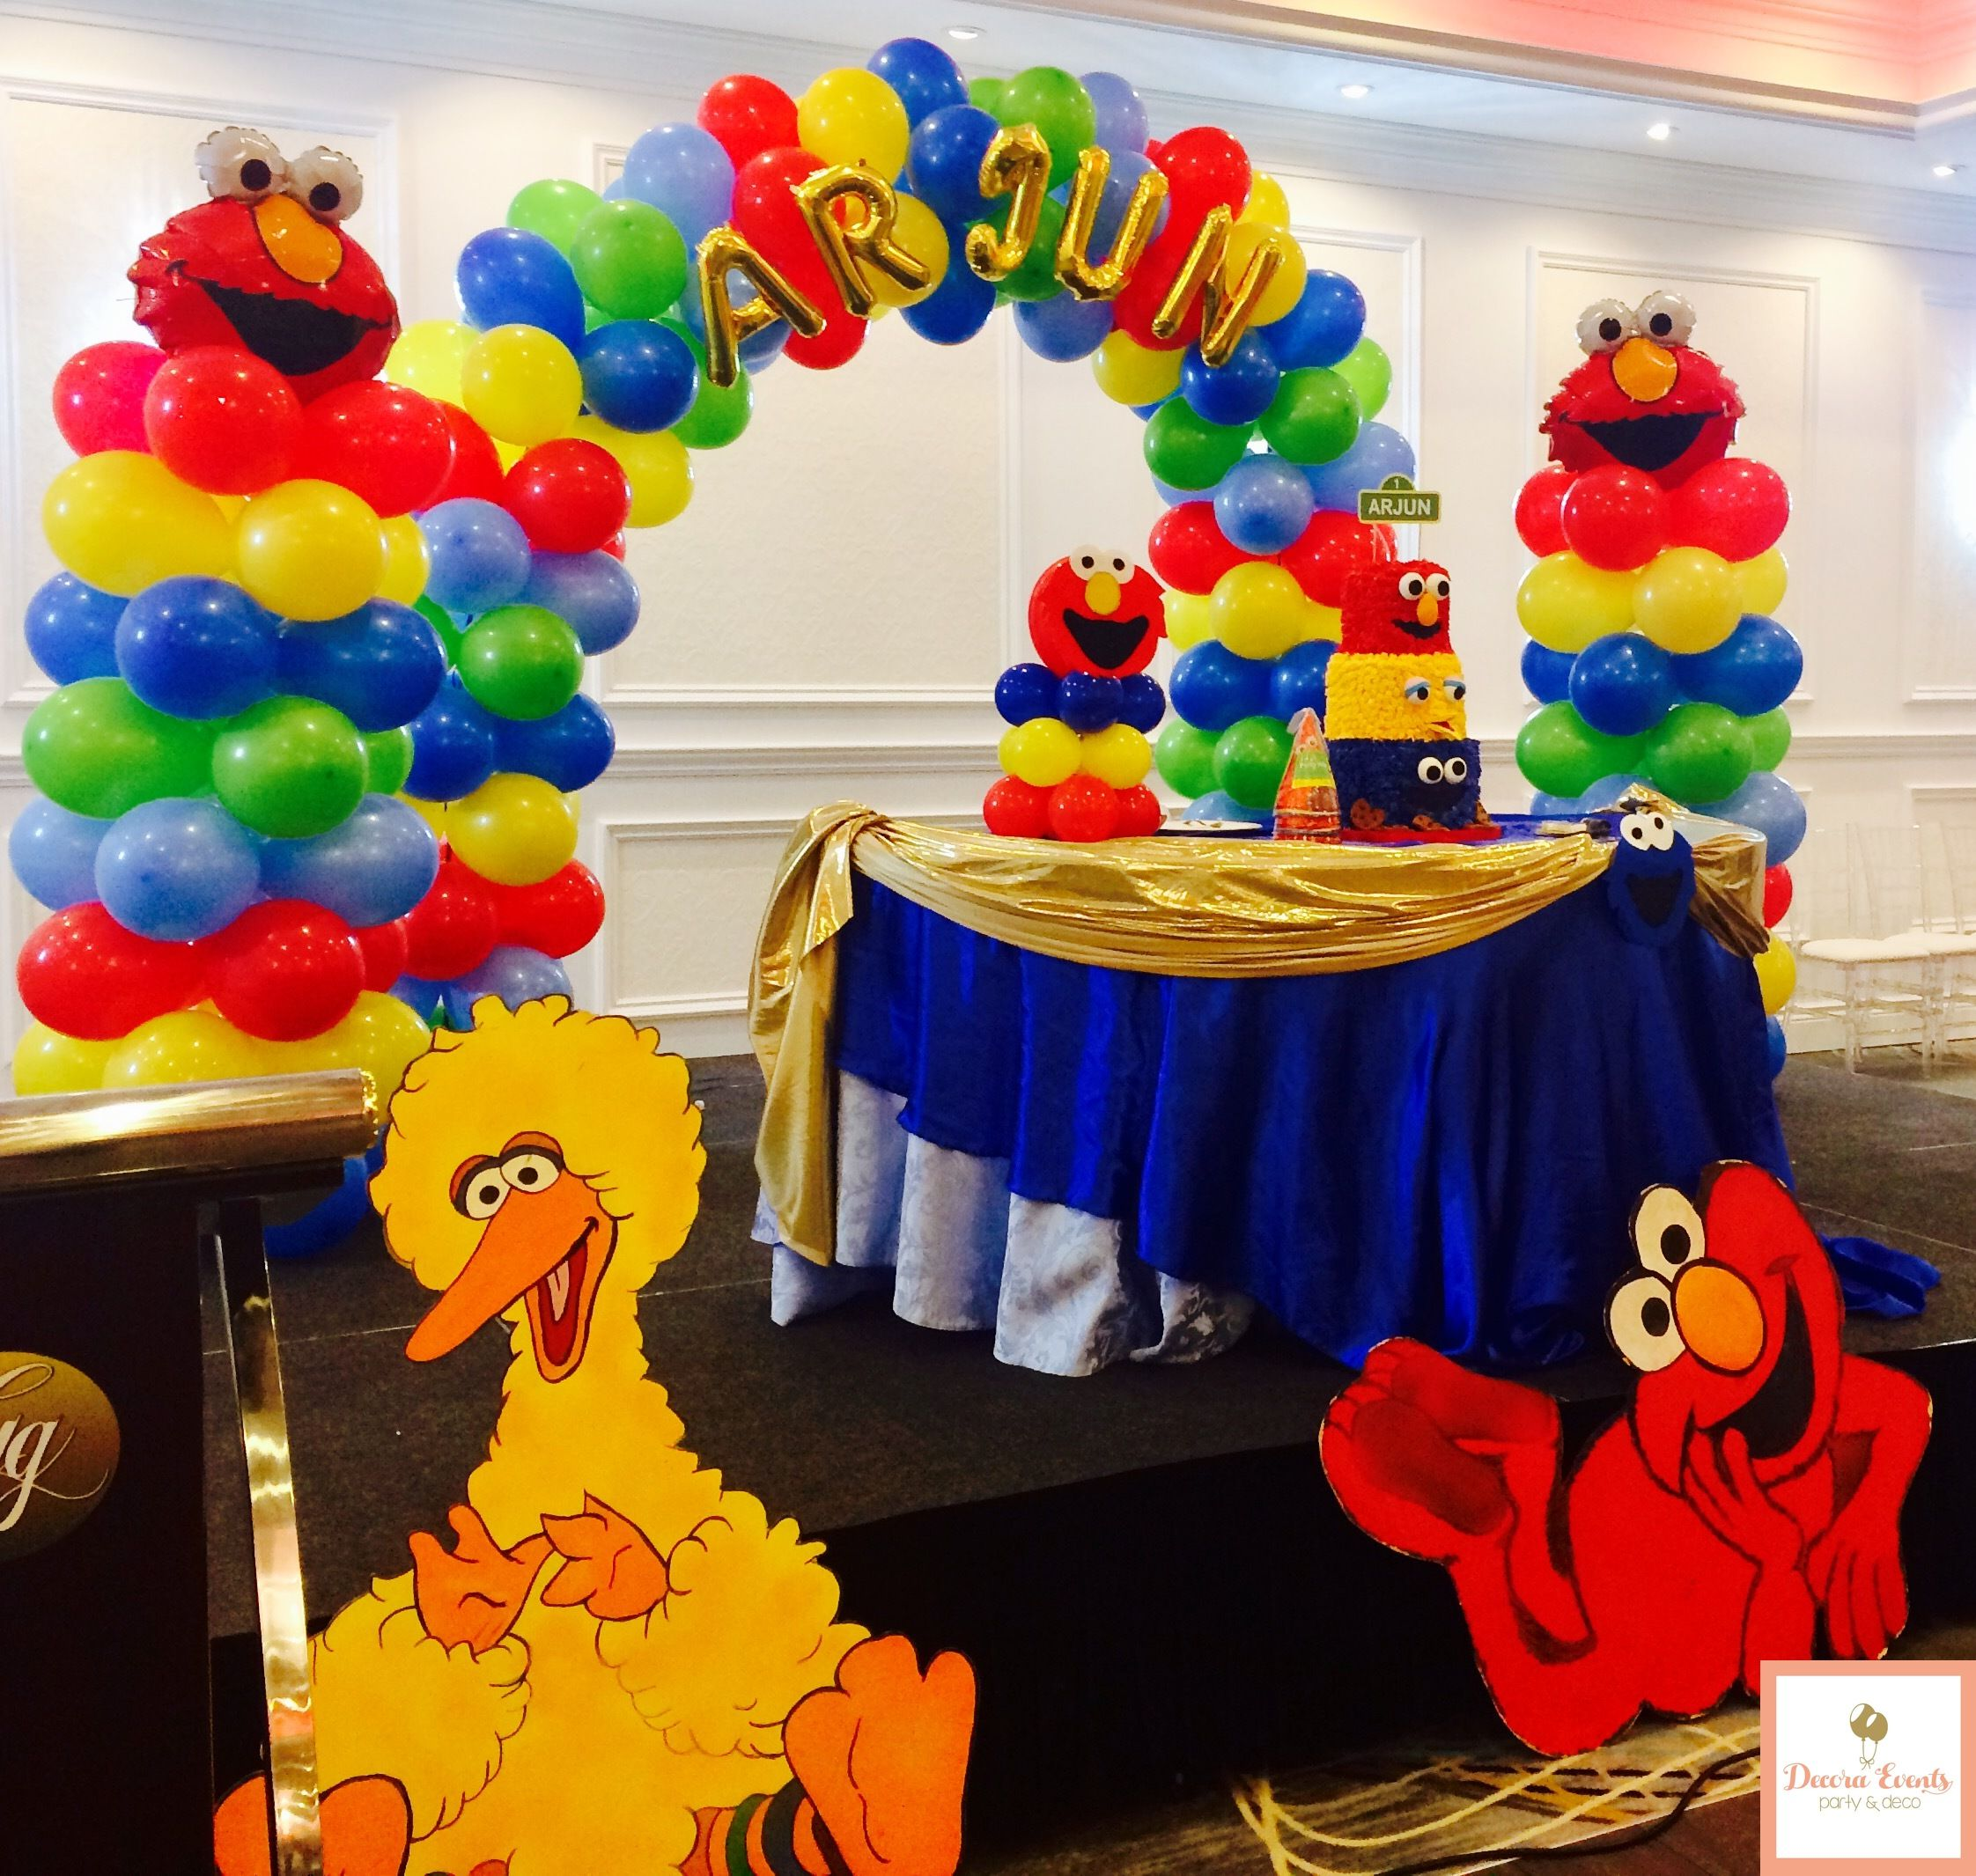 Sesame street conquered the world in this decoration a cake table decoration combined with some